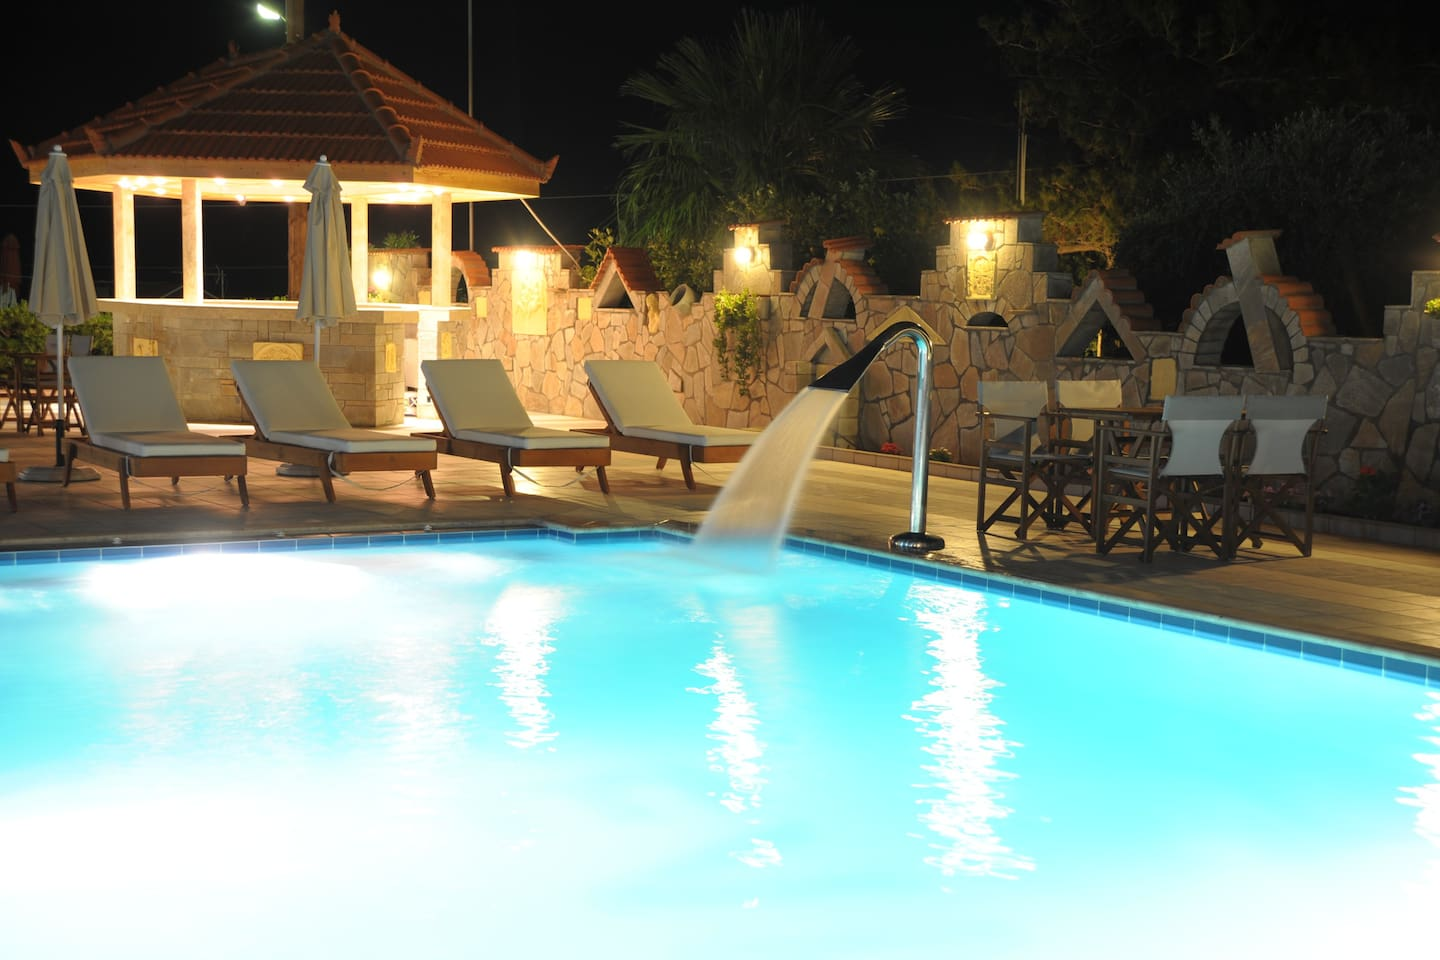 night pool and bar view